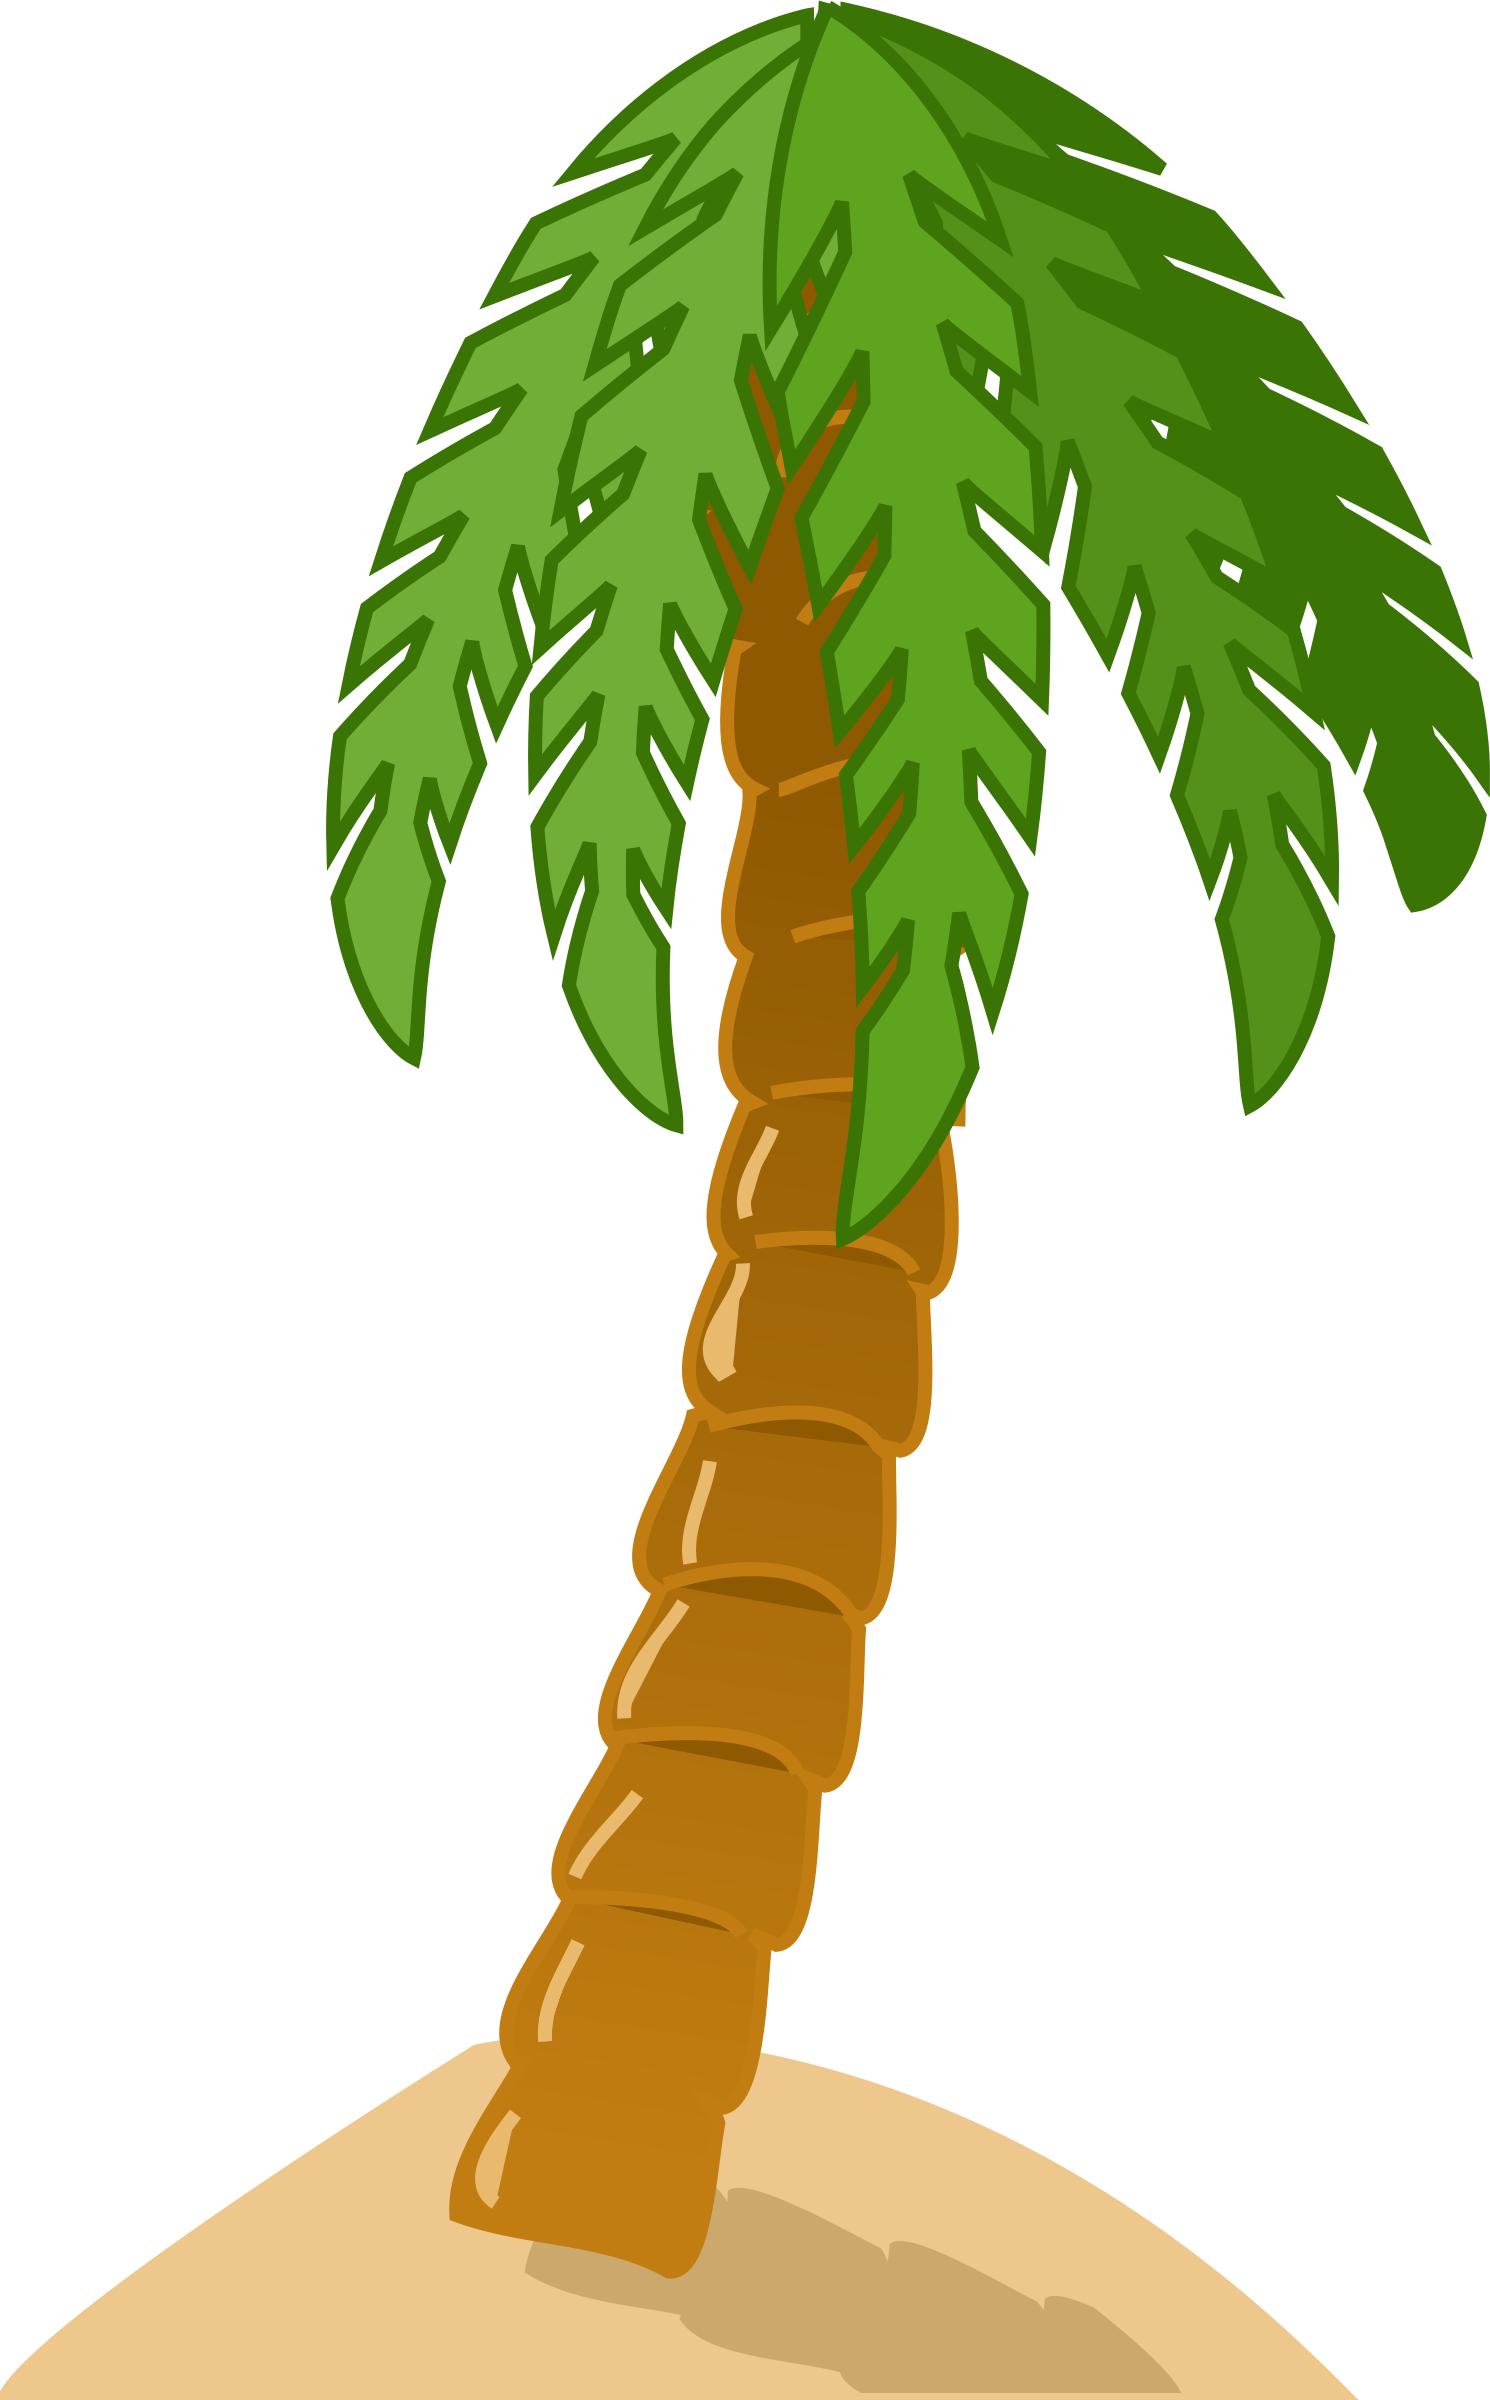 Palm tree by rg1024